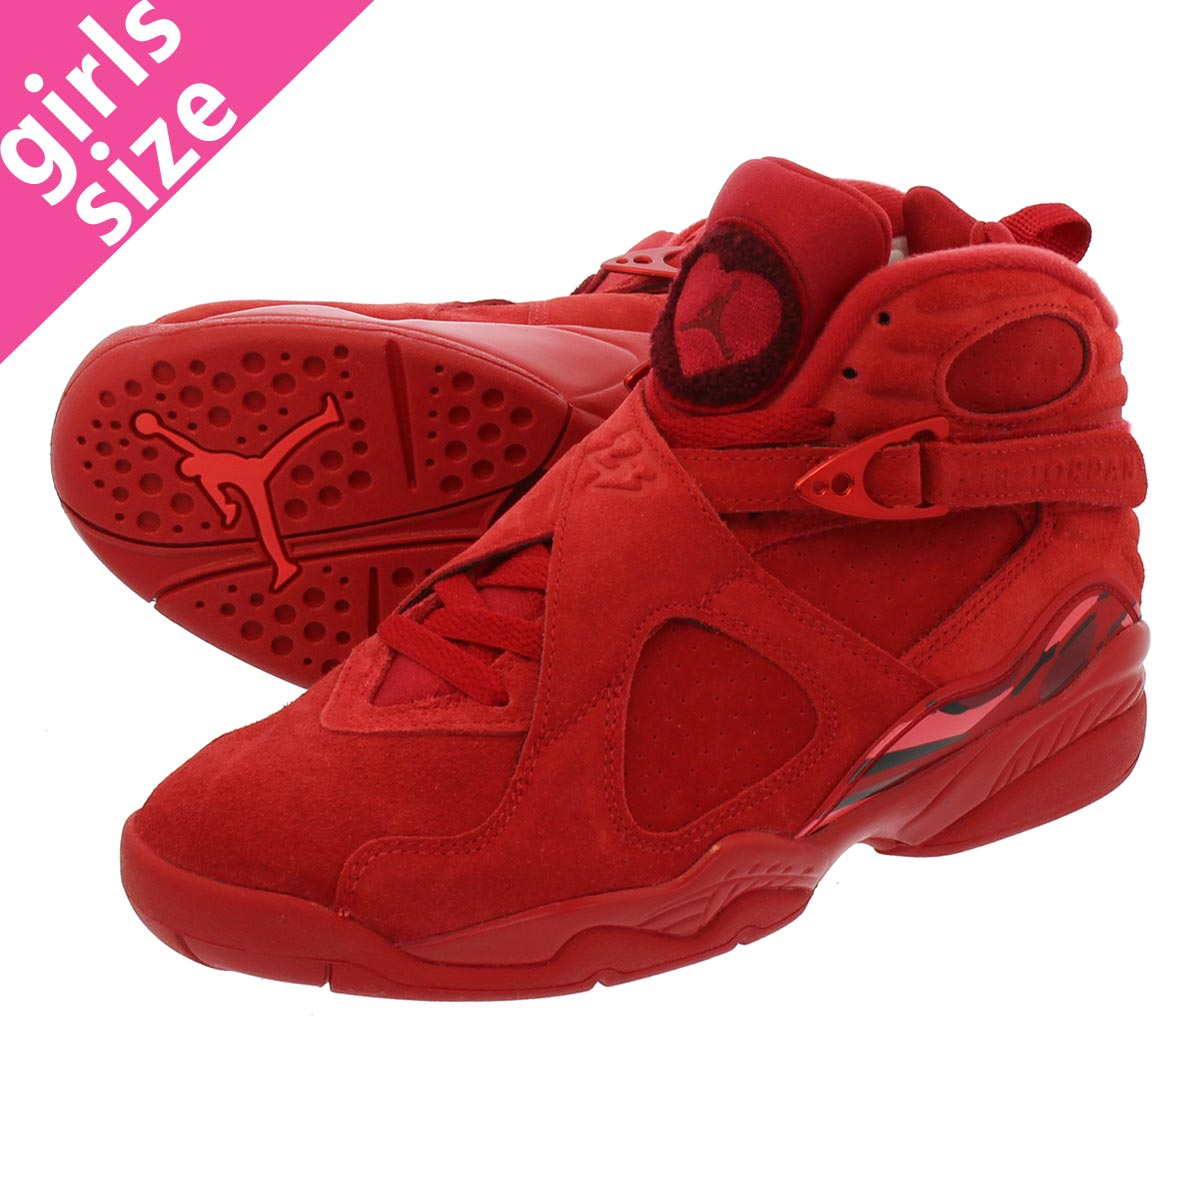 a42d183a5d9c NIKE WMNS AIR JORDAN 8 RETRO VDAY Nike women Air Jordan 8 nostalgic GYM RED EMBER  GLOW TEAM RED